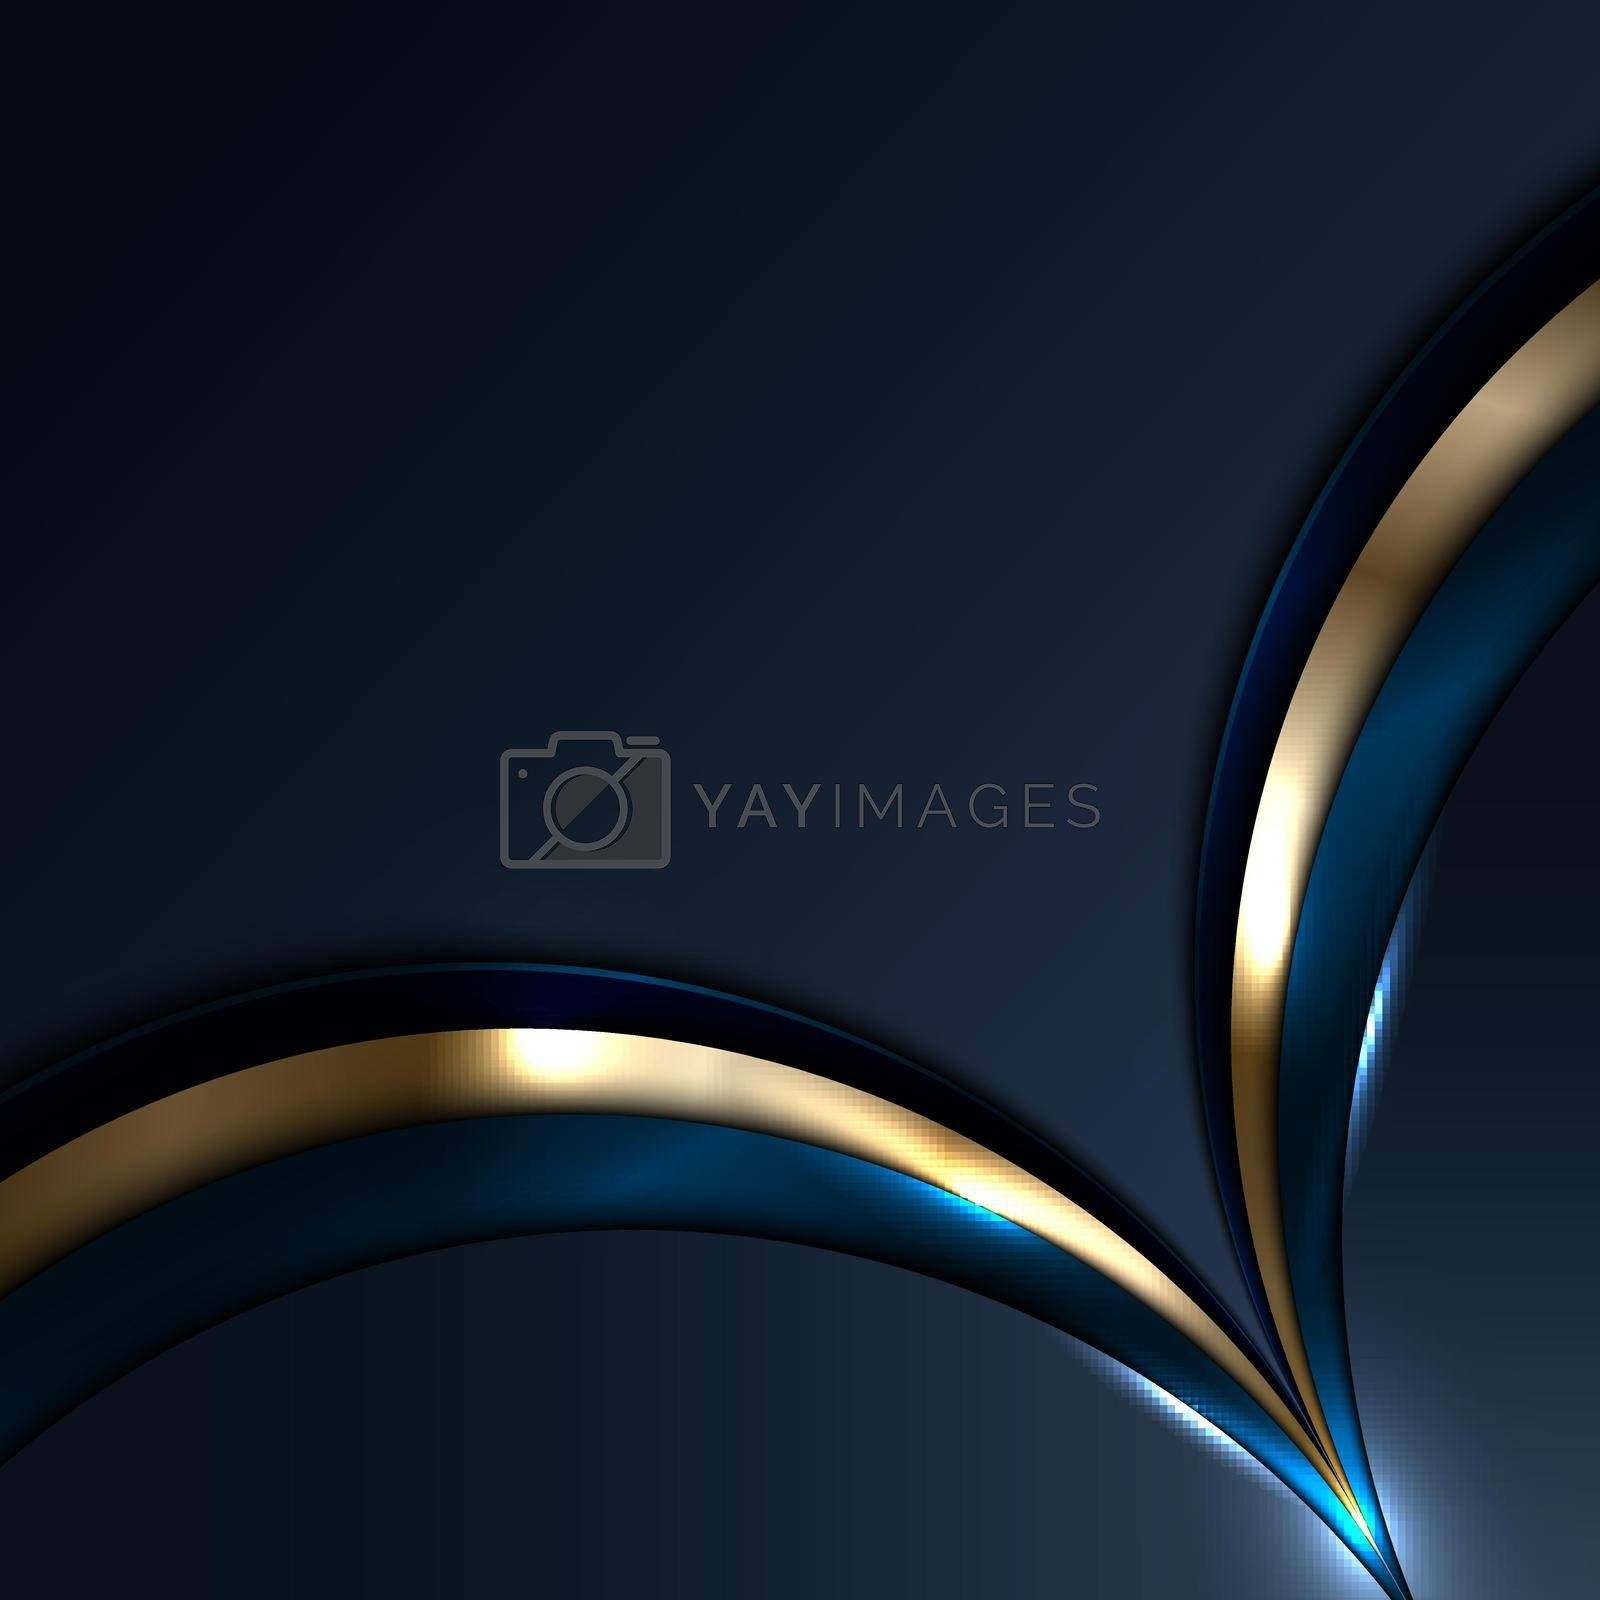 Abstract blue and gold circles overlapping layer with light and shadow on dark blue background. Luxury style. Vector illustration